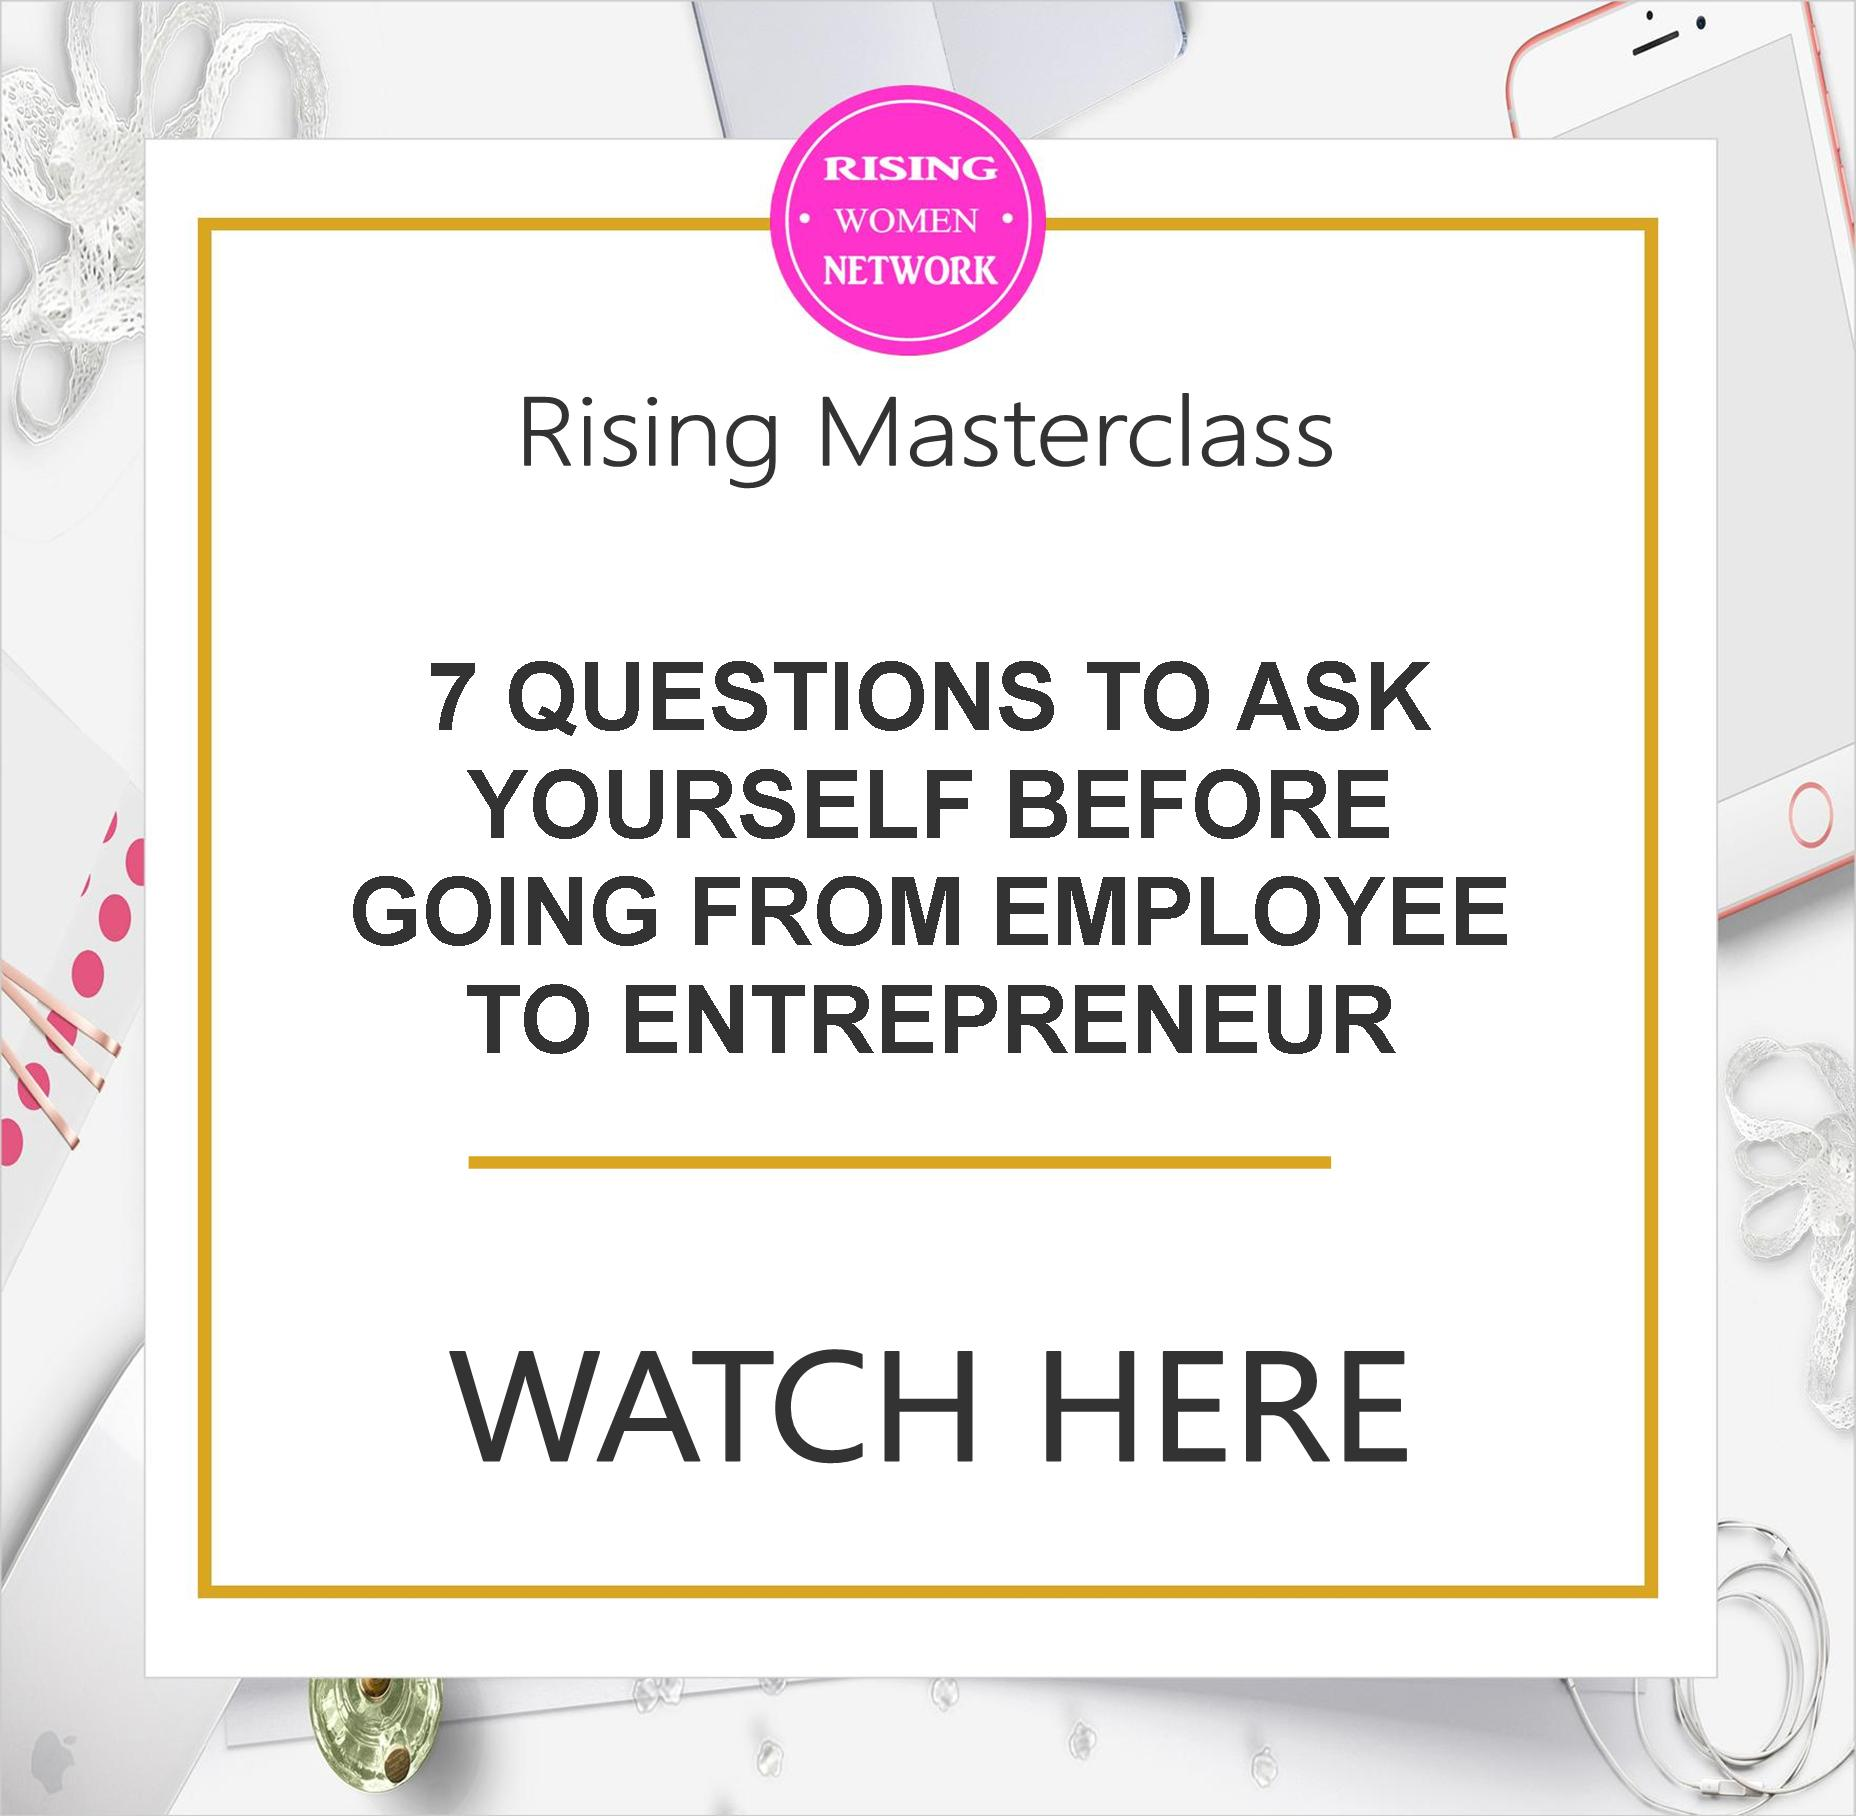 7 questions to ask yourself before going from employee to entrepreneur